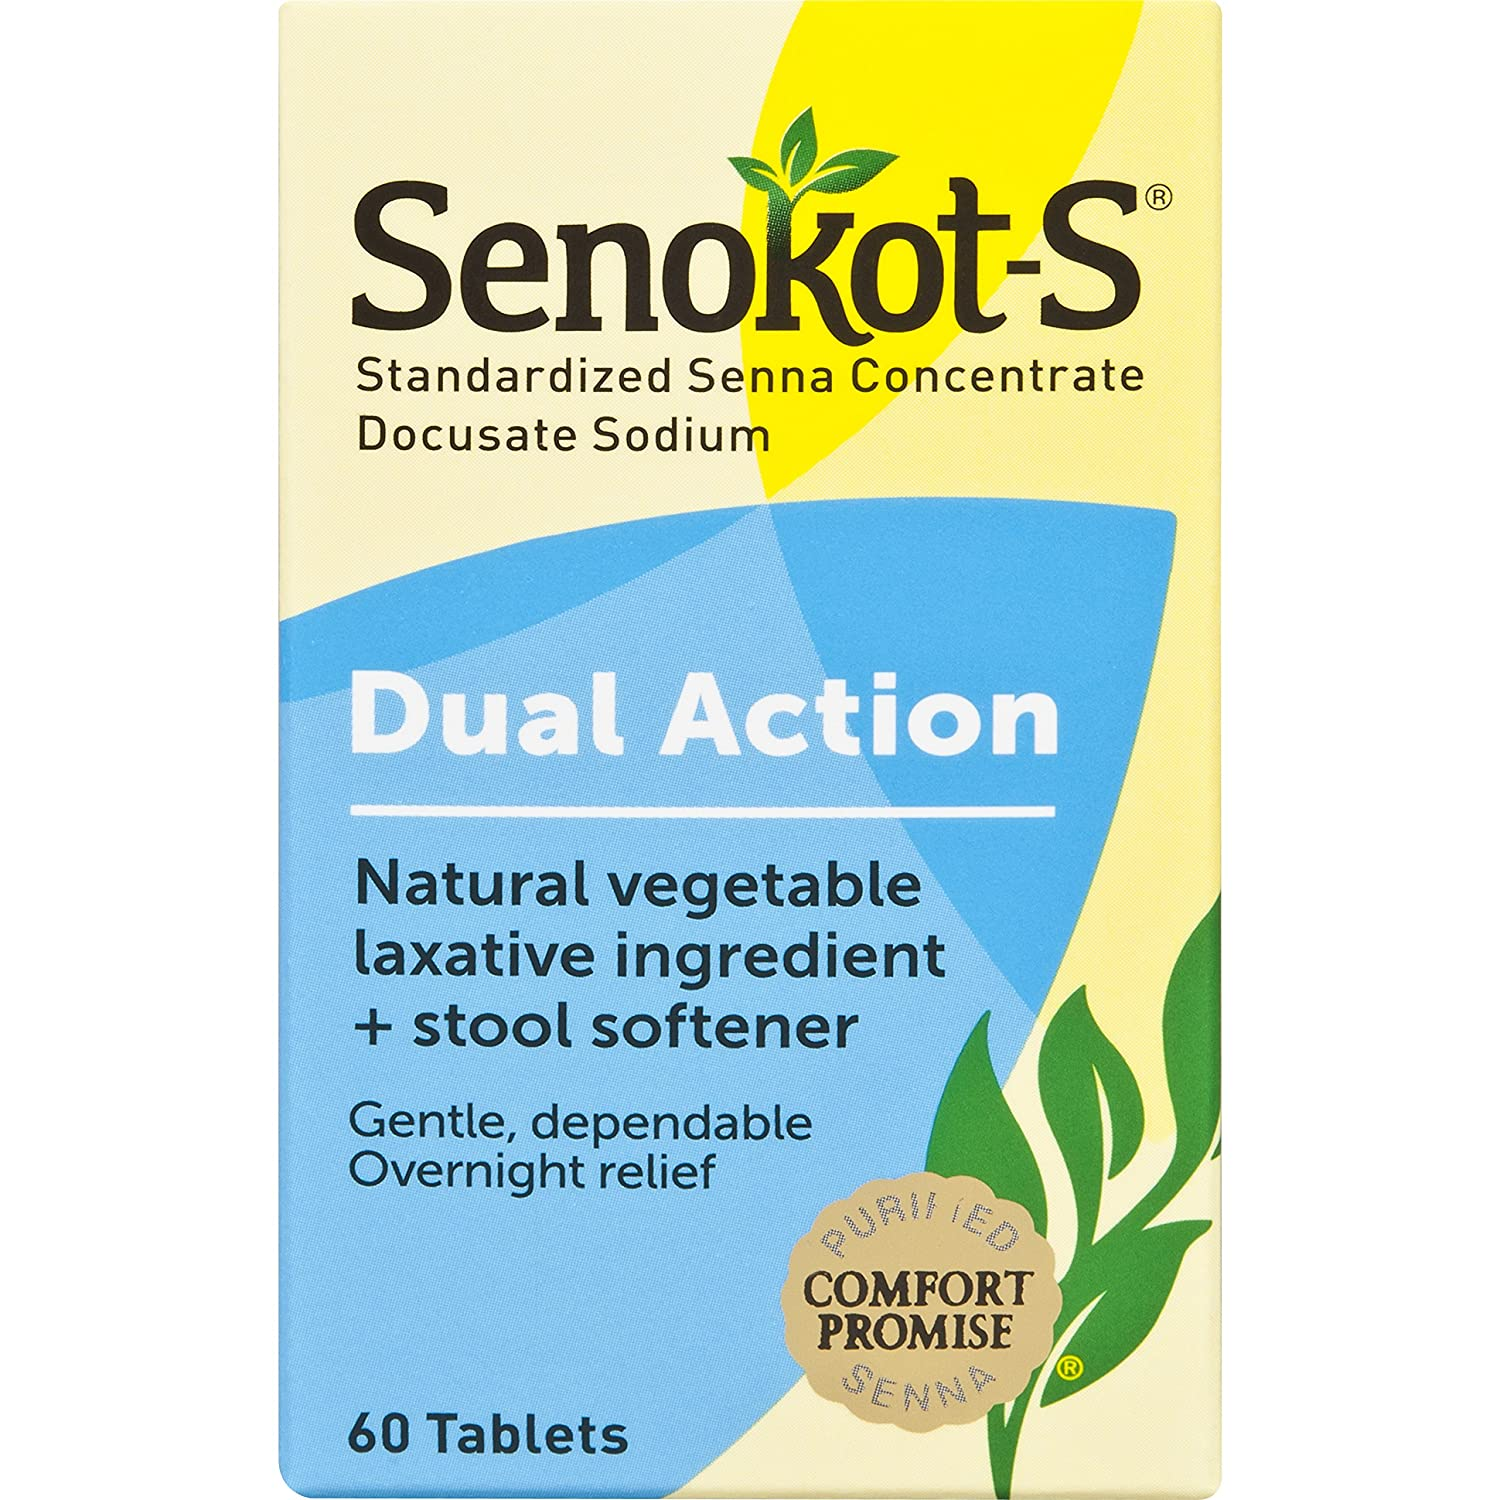 Senokot-S Dual Action 60 Tablets, Natural Vegetable Laxative Ingredient Plus Stool Softener Tablets, Gentle Dependable Overnight Relief of Occasional ...